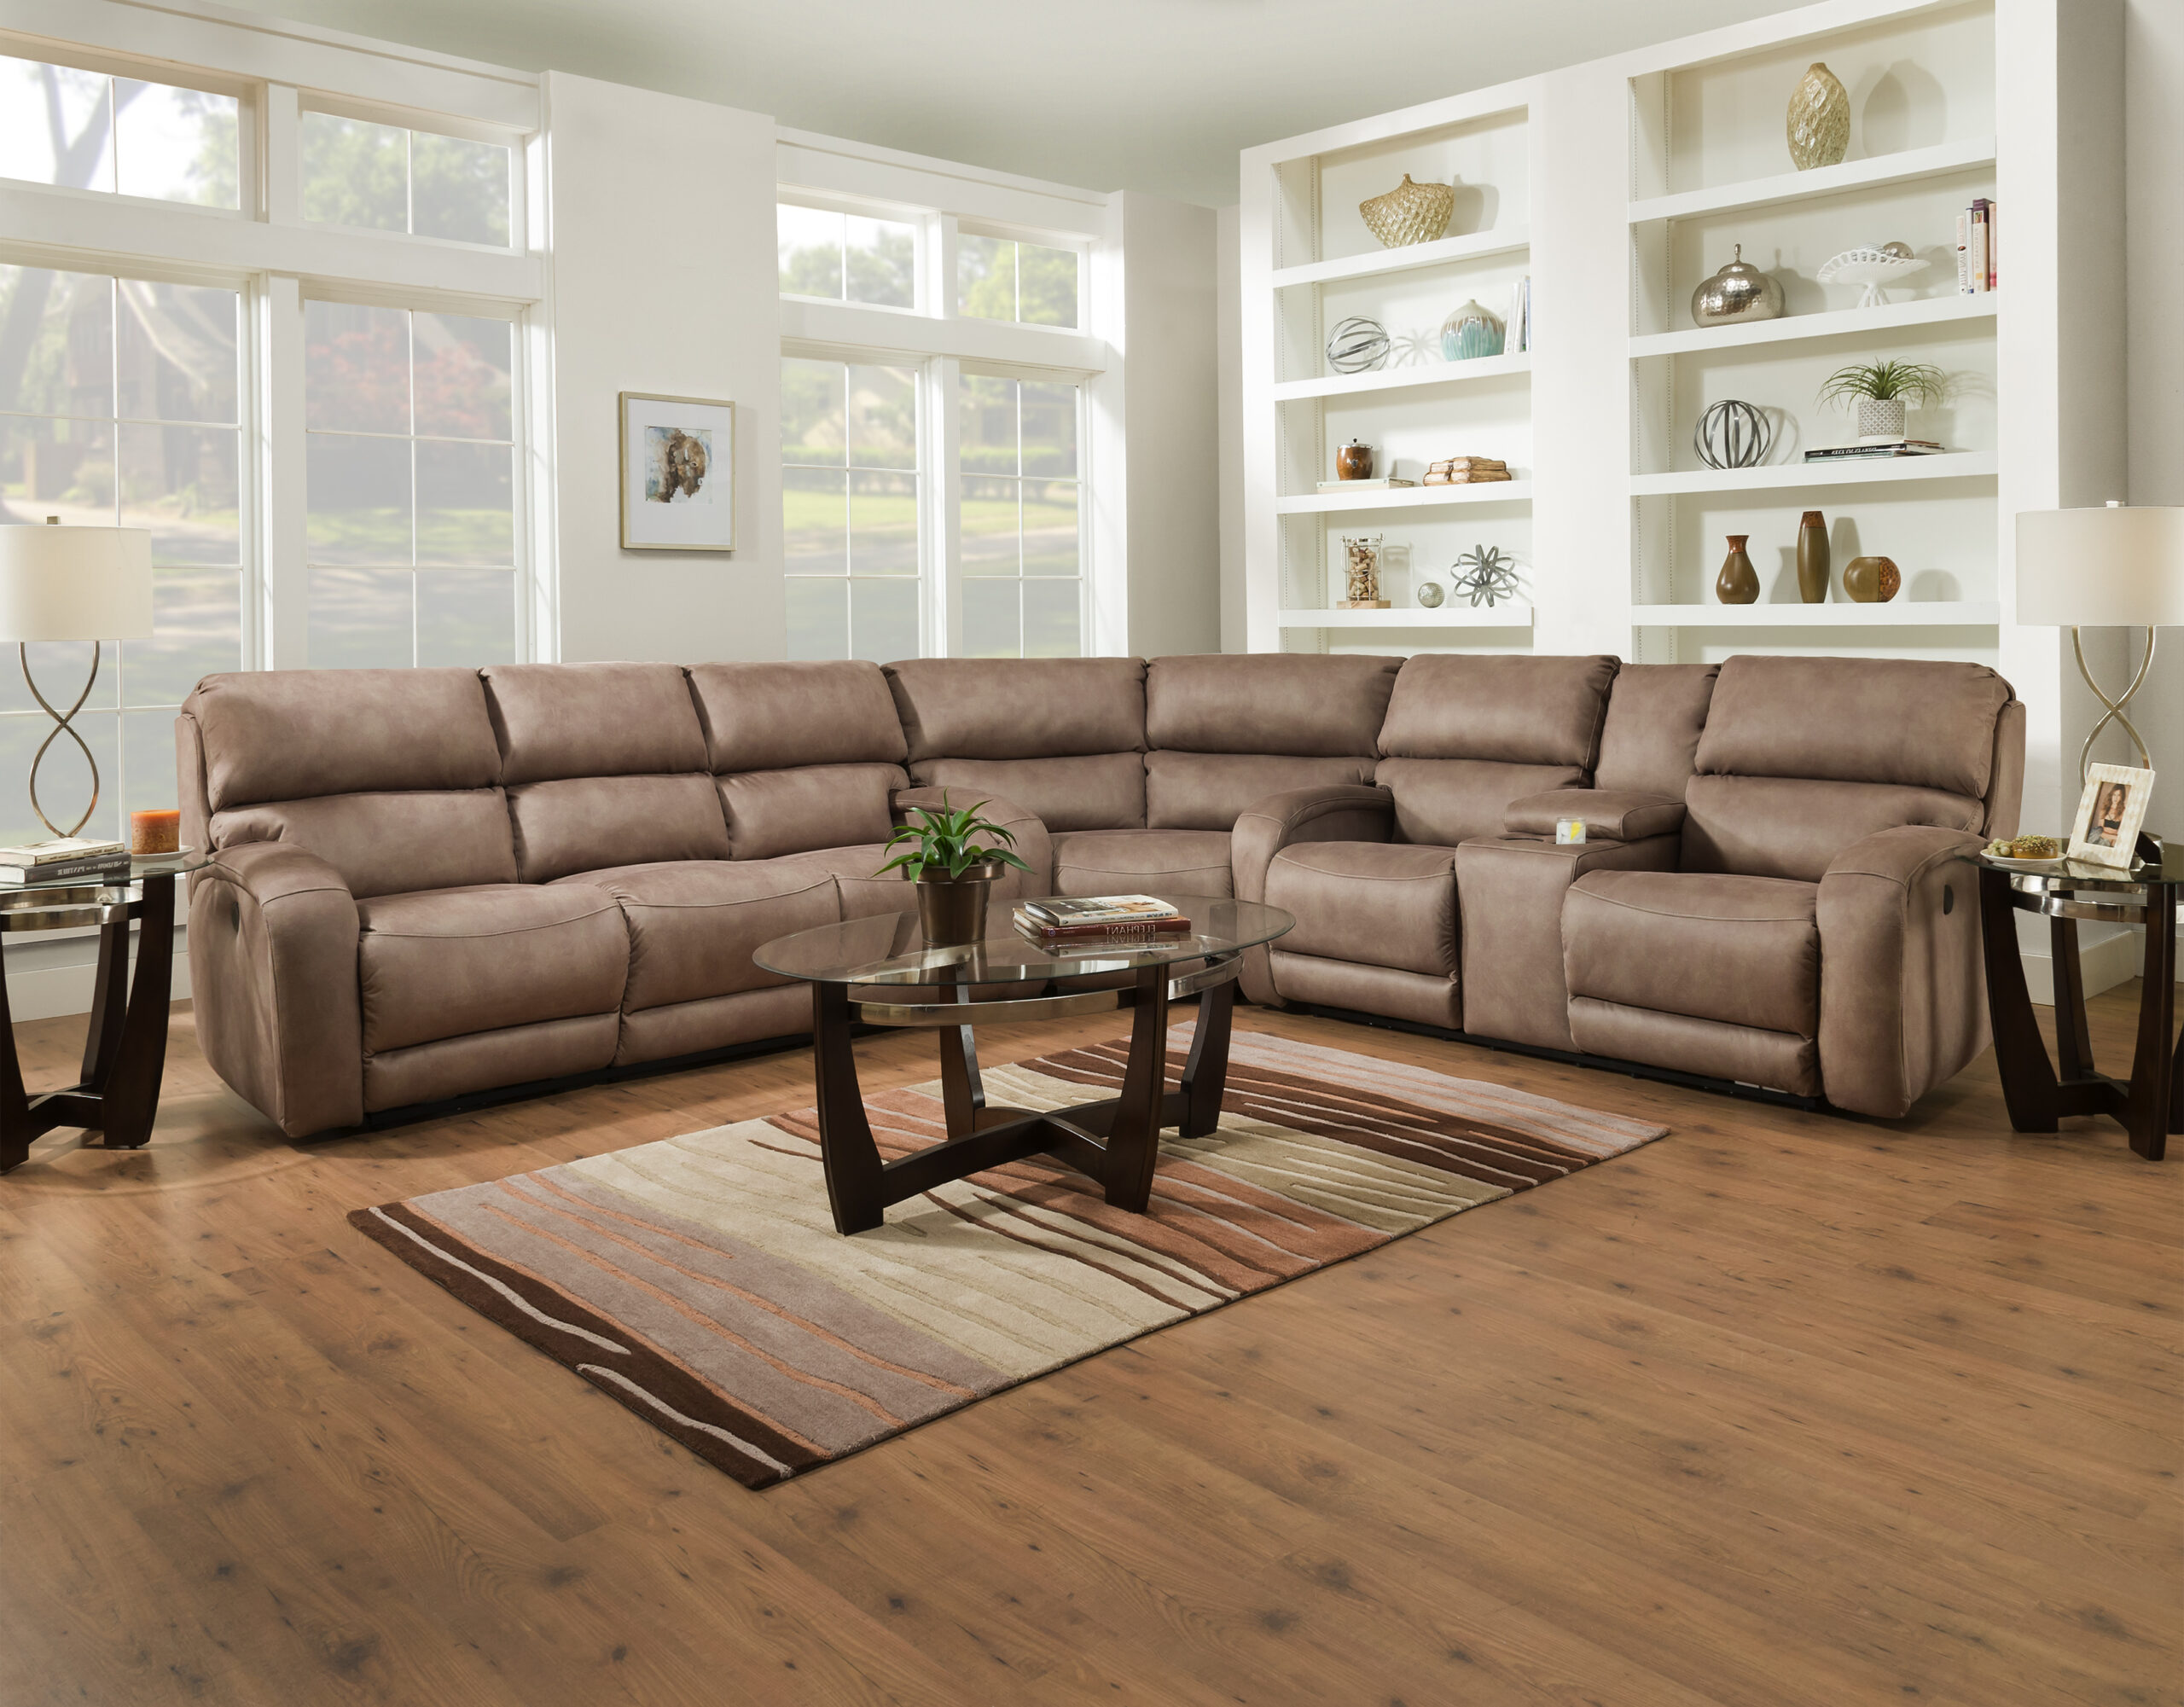 884-Sectional-in-276-17-Savvy-Latte-RS-PU-1-scaled